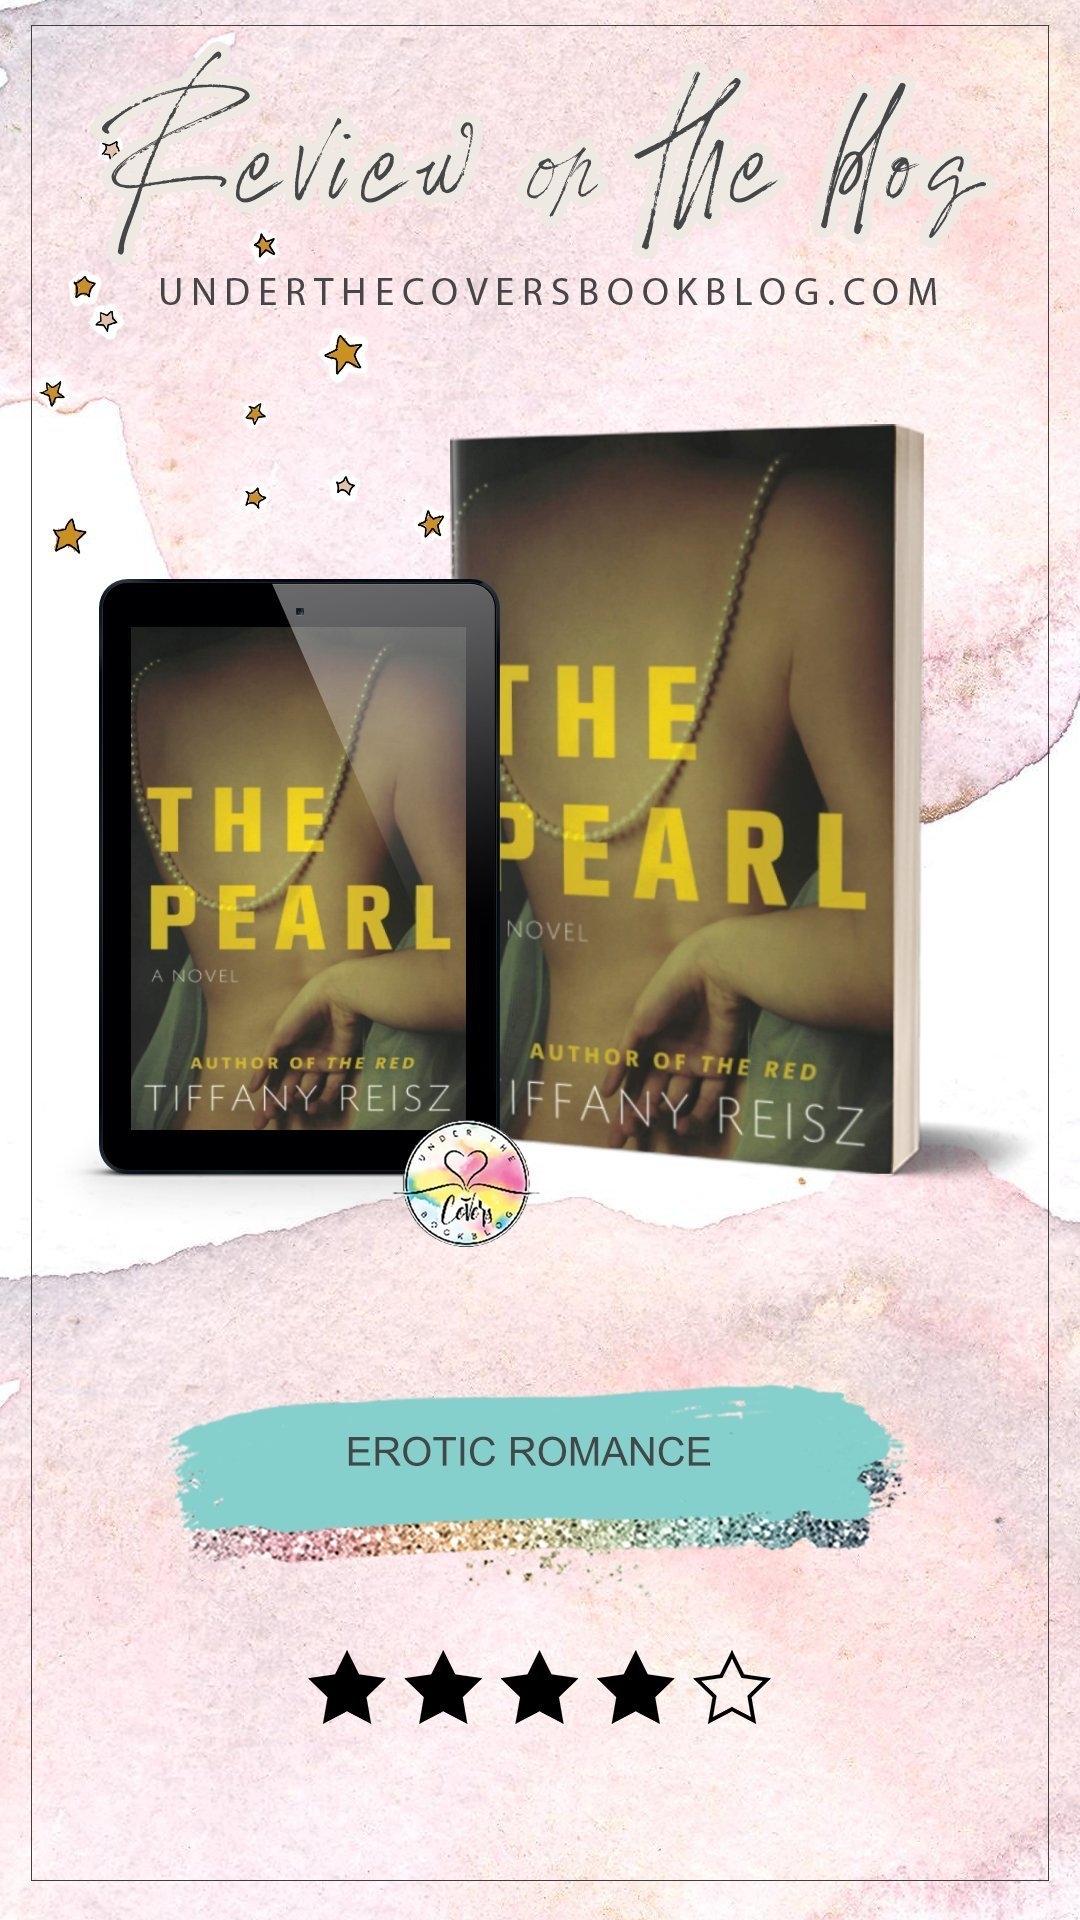 ARC Review: The Pearl by Tiffany Reisz